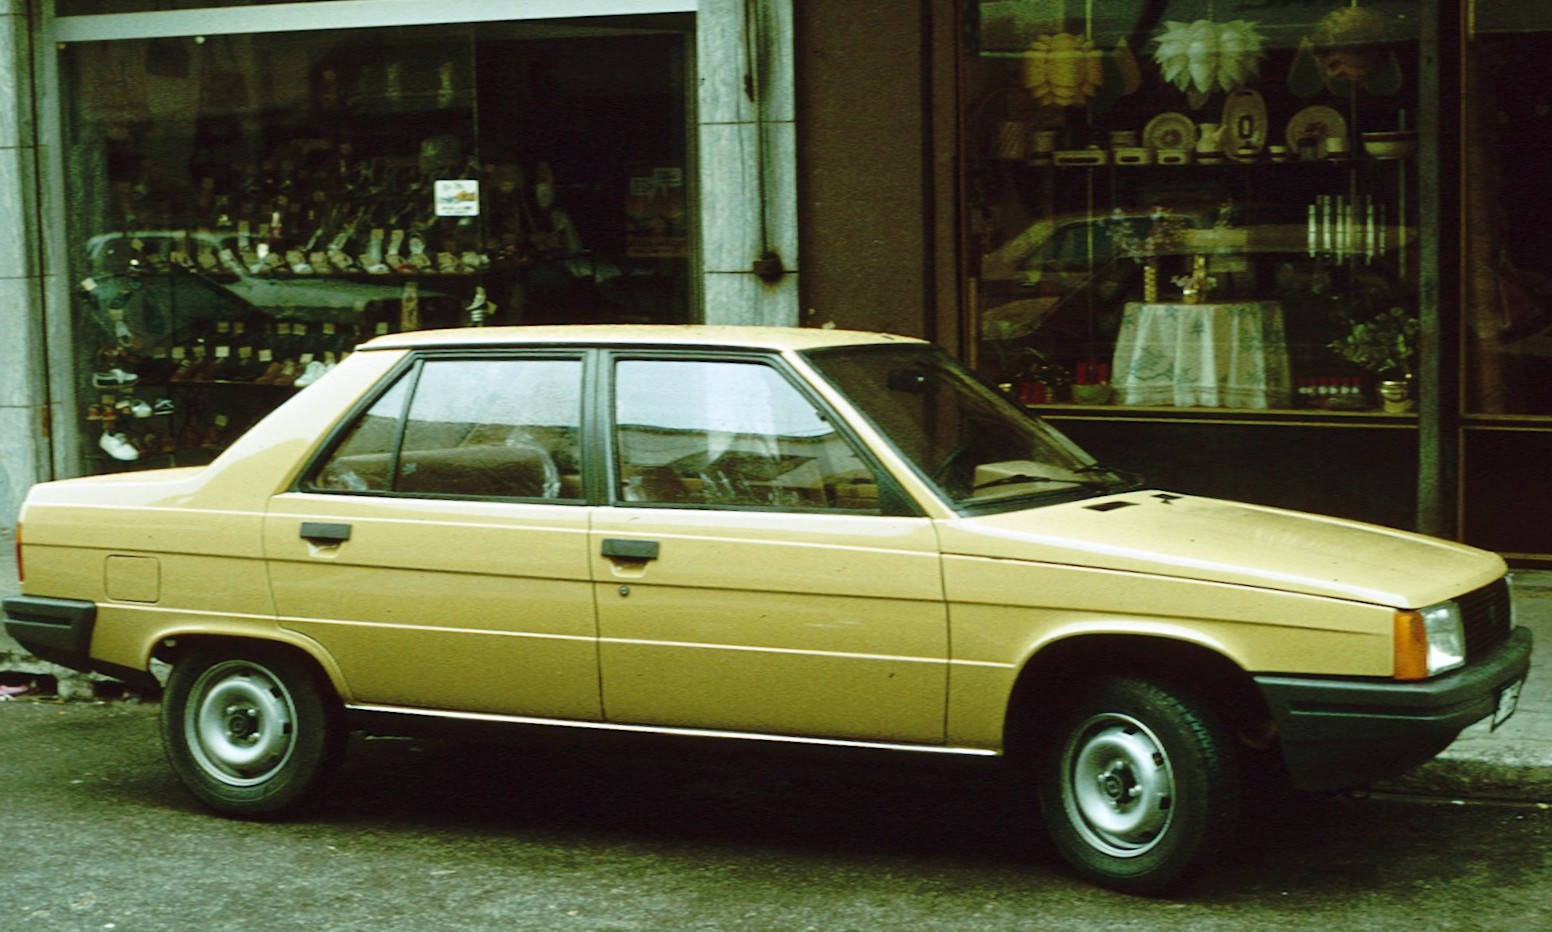 creme Renault 9 early one with shop windows